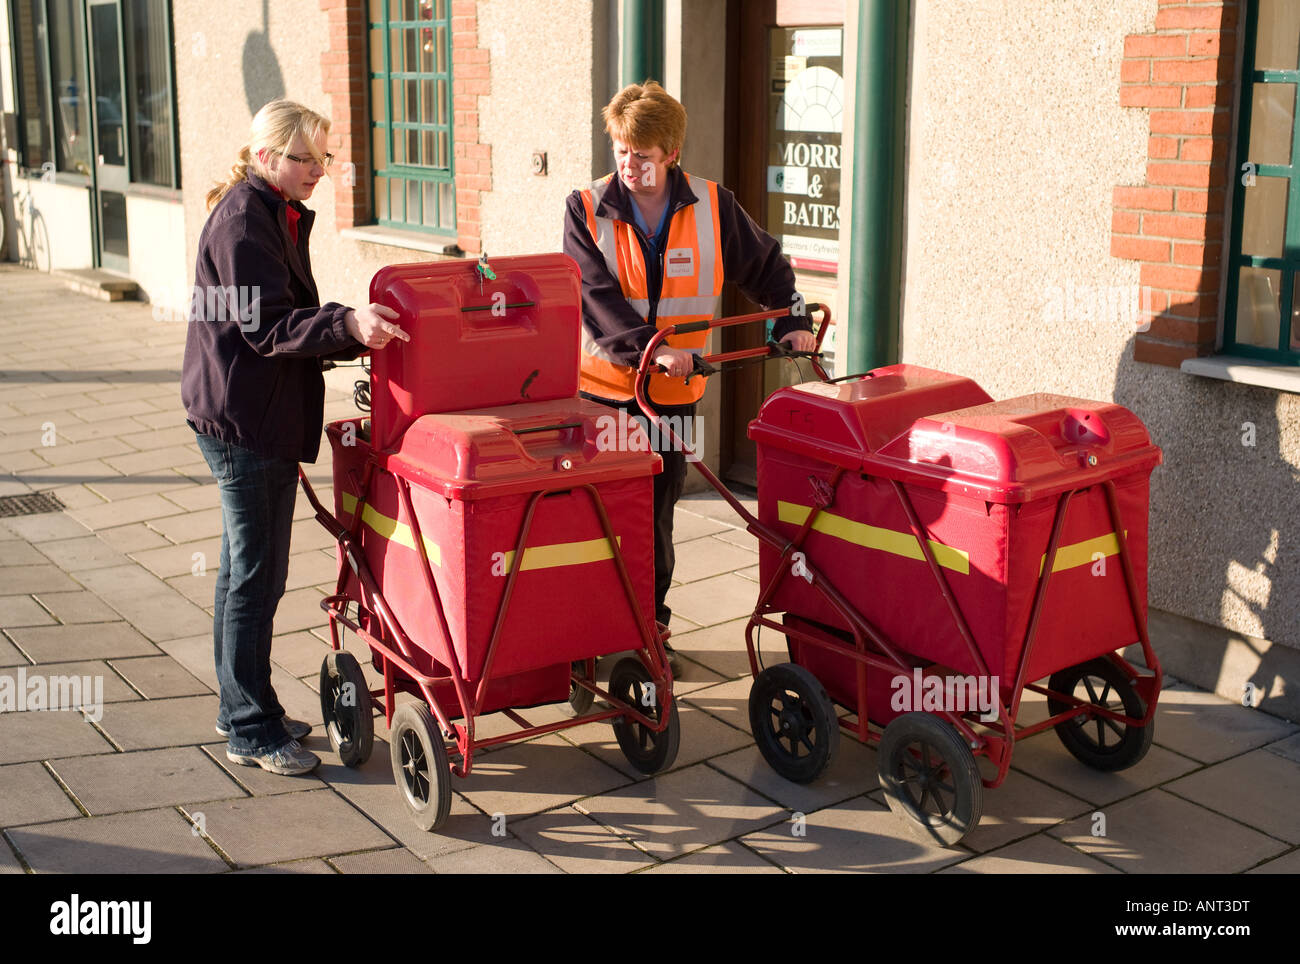 Two  2 women postal workers with red handcarts full of letters delivering the christmas post Aberystwyth Wales UK - Stock Image